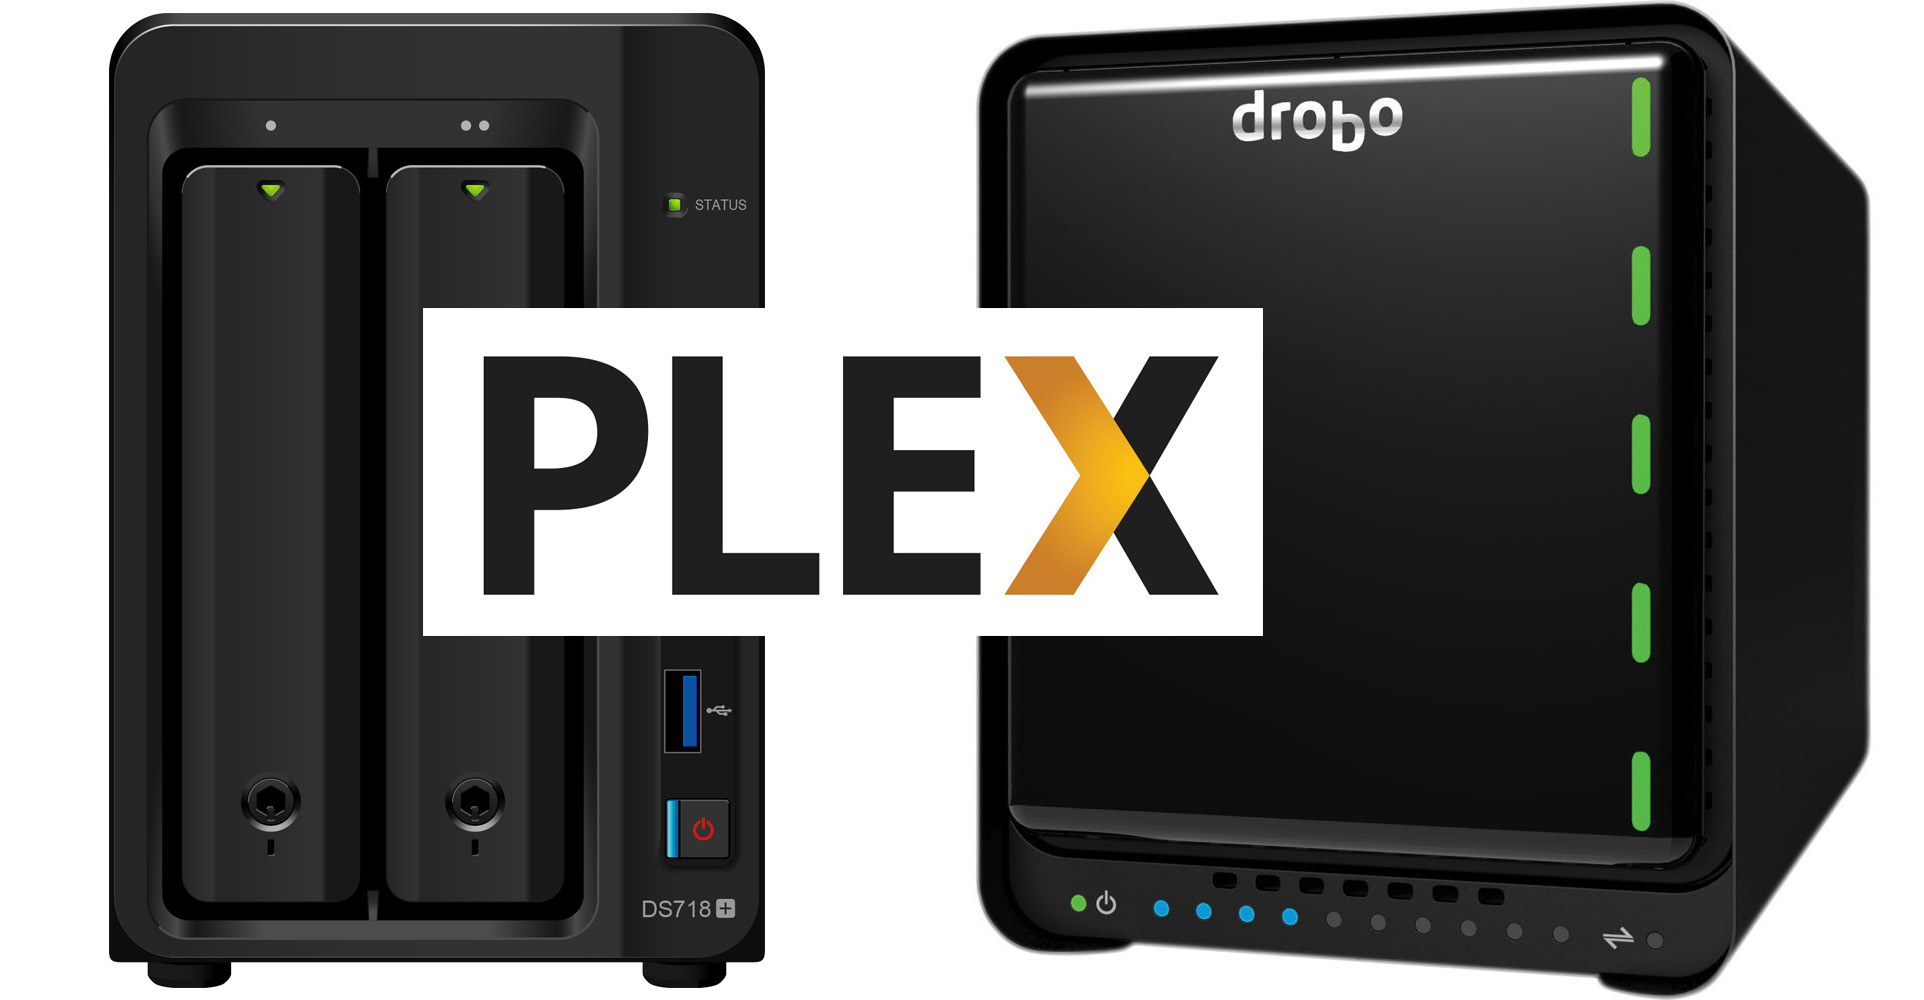 Best Plex Server Build 2020 Getting started with Plex by choosing the right server and storage